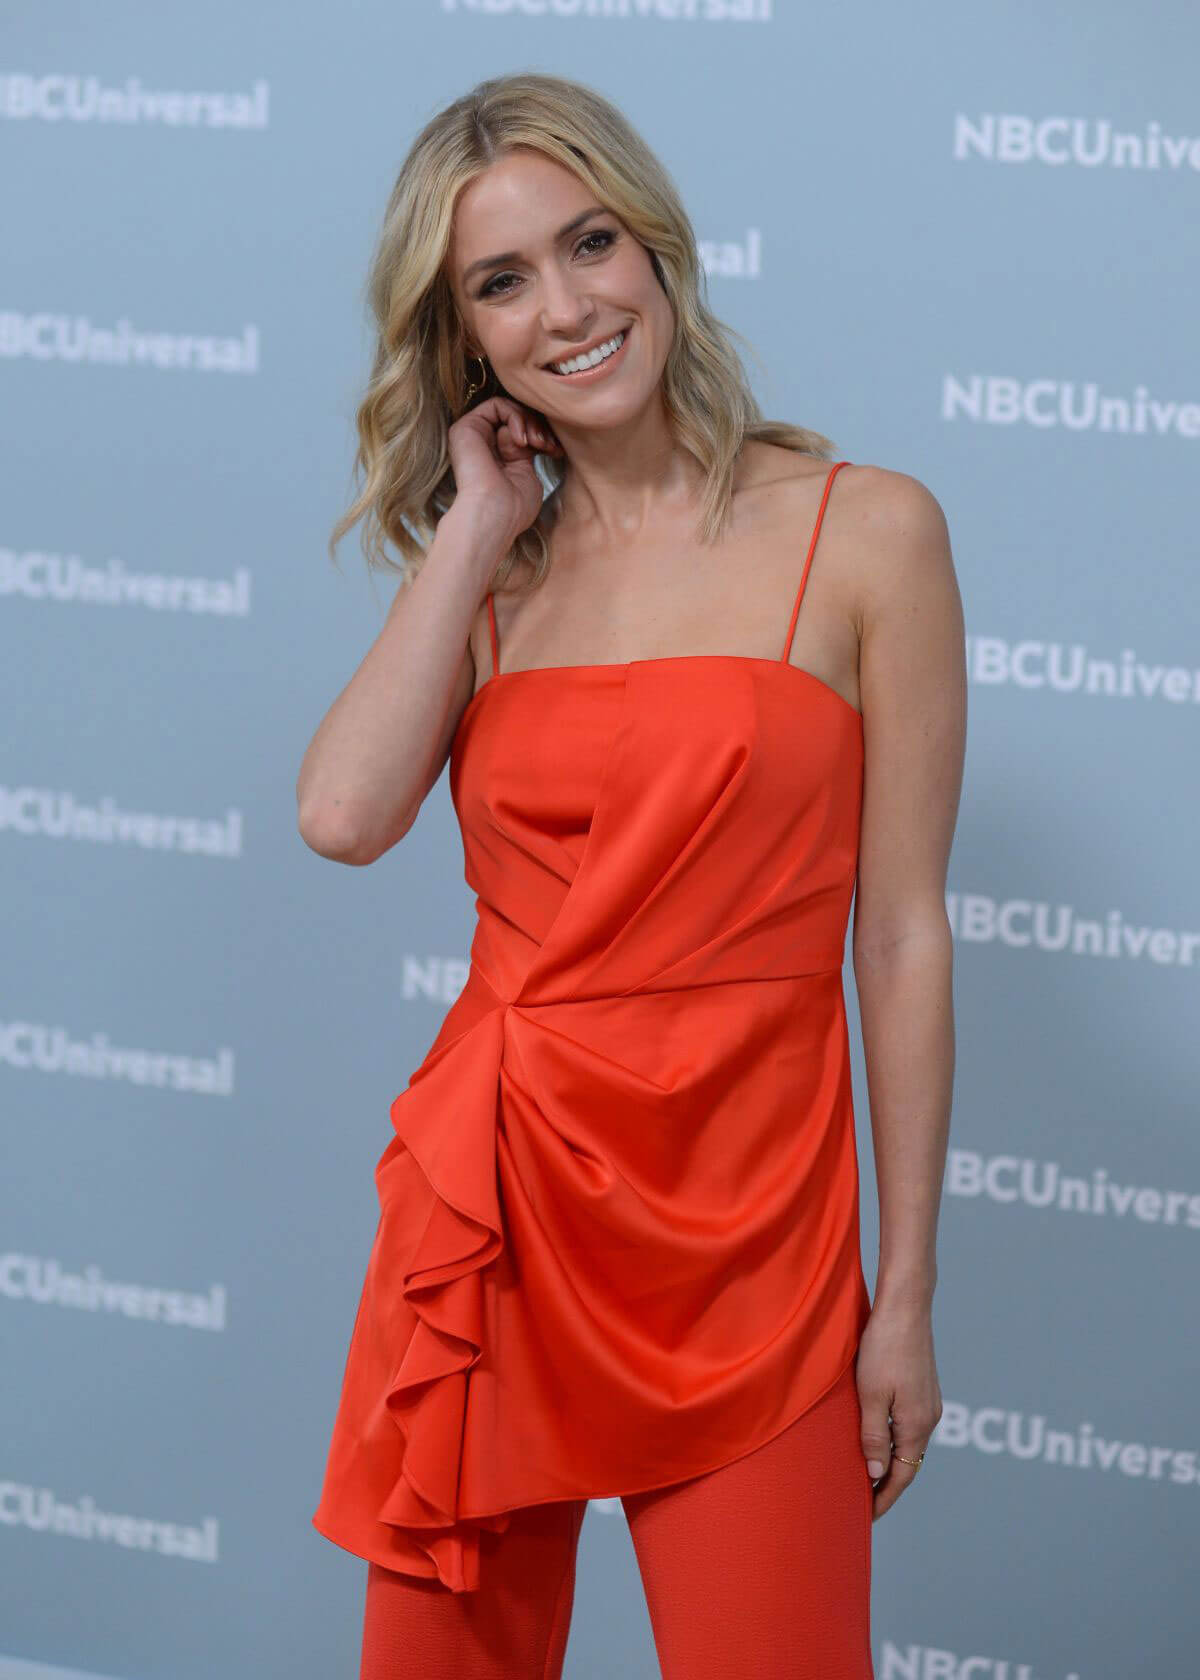 Kristin Cavallari at NBCUniversal Upfront Presentation in New York 2018/05/14 1